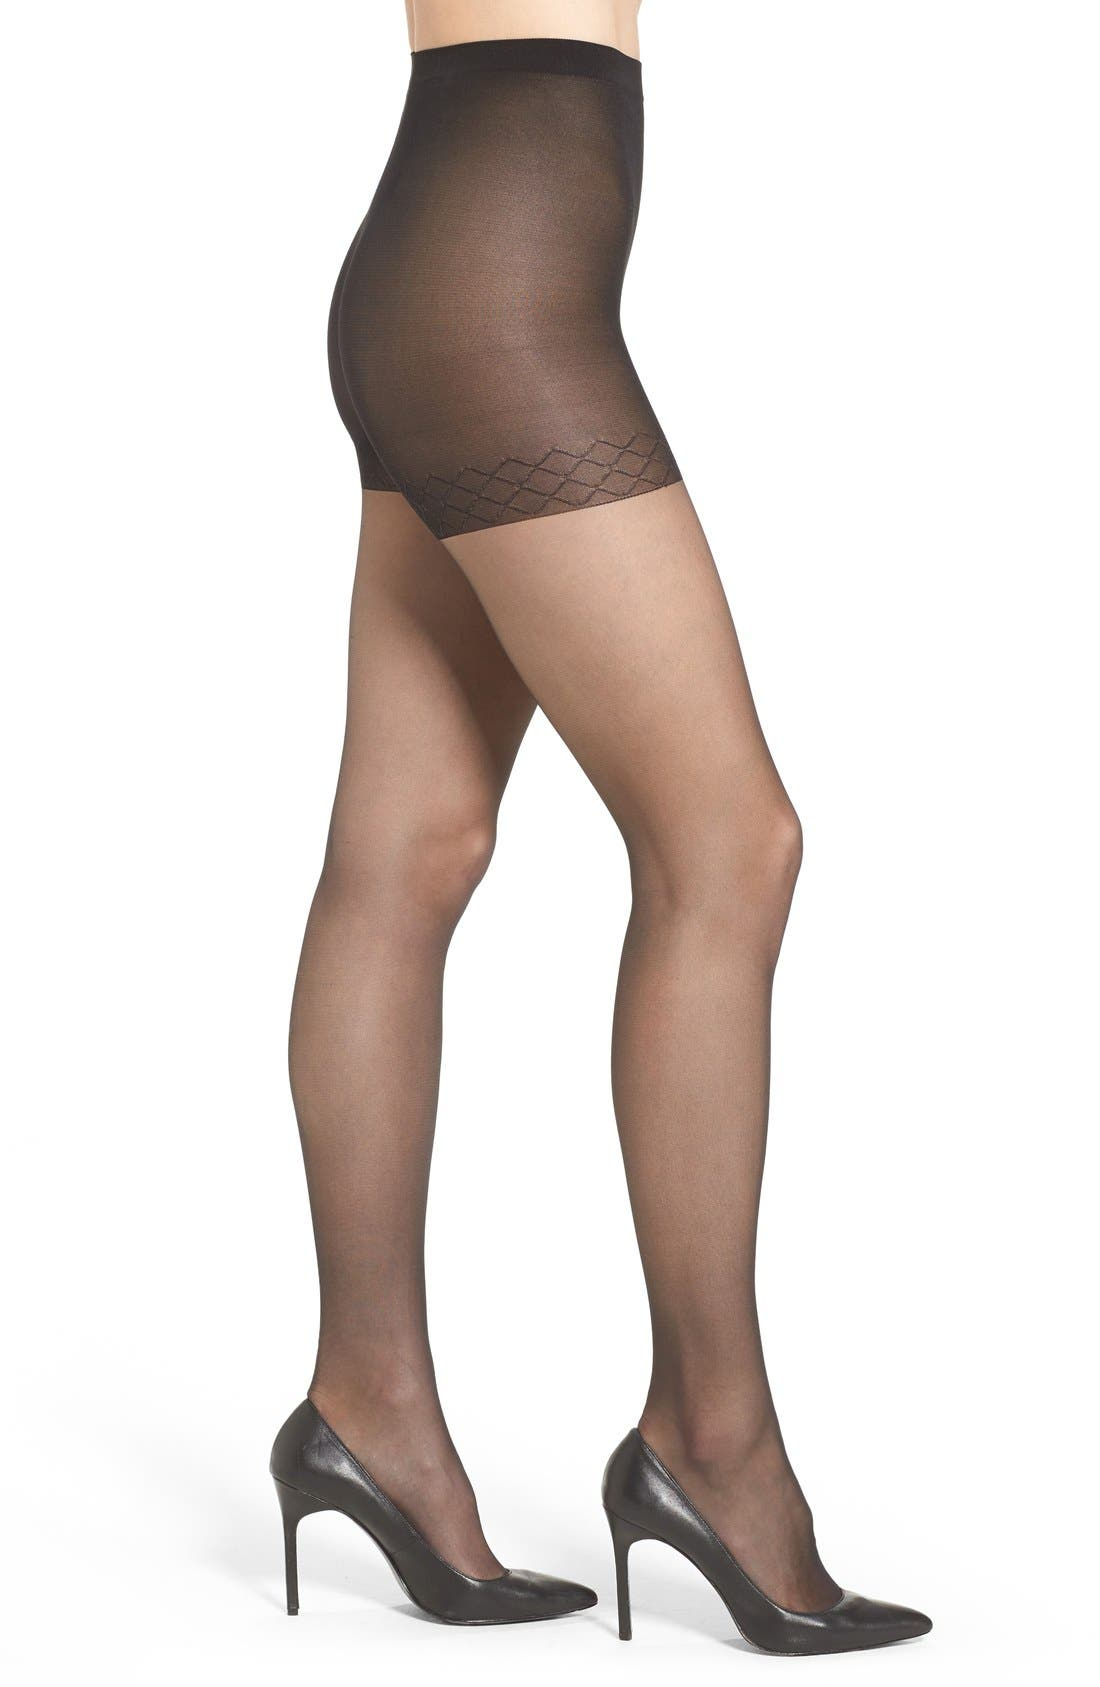 Super sheer and comfortable pantyhose